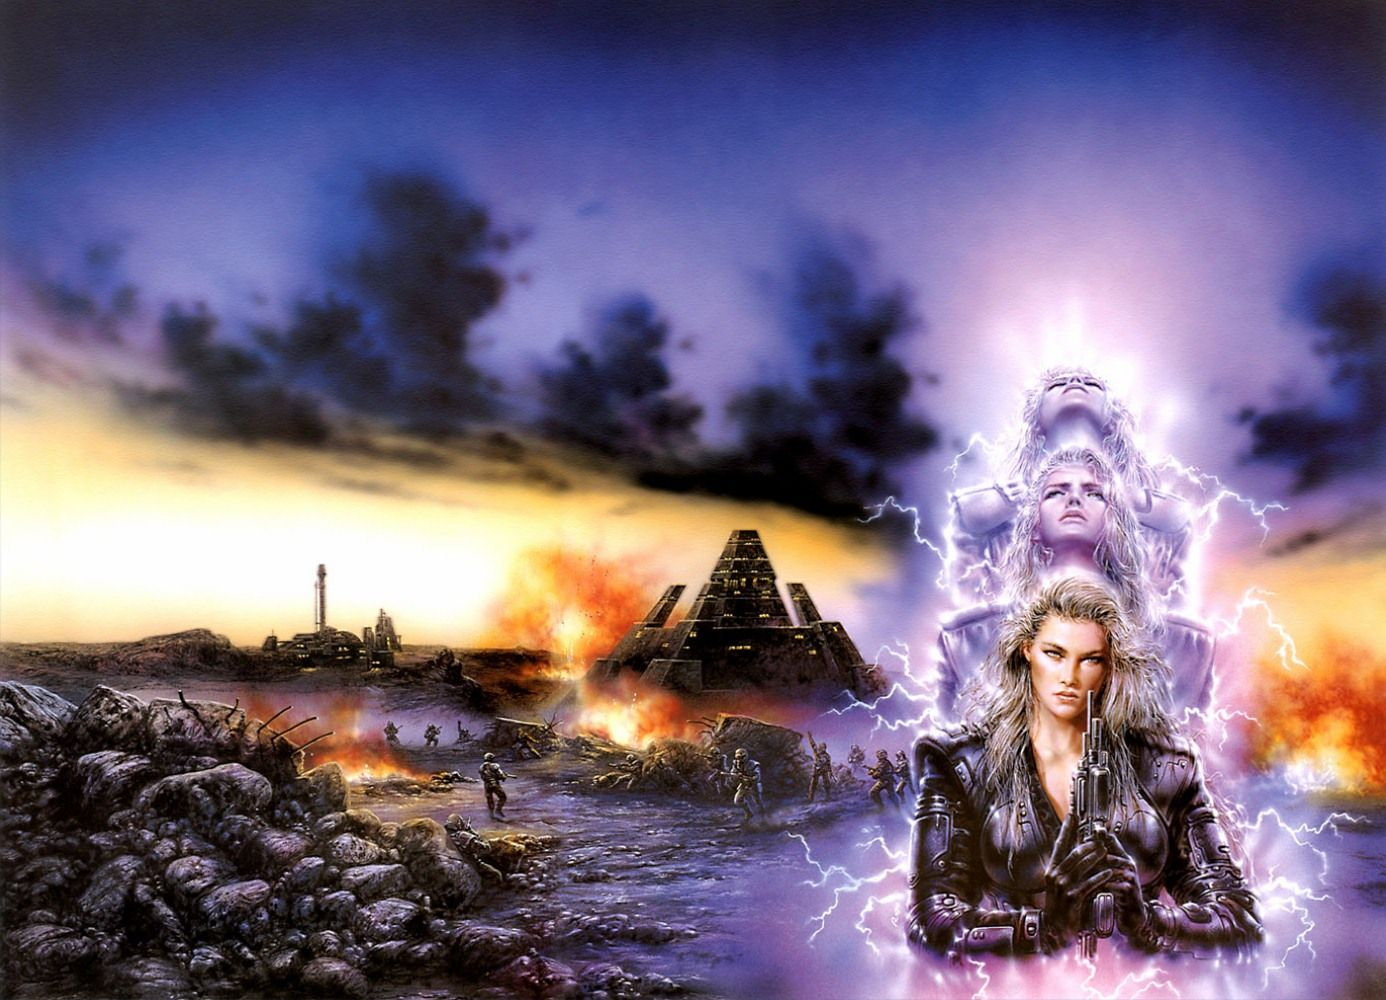 Download free fantasy wallpapers luis royo wallpaper backgrounds download free fantasy wallpapers luis royo wallpaper backgrounds wallpaperbackgrounds egypt interests pinterest luis royo wallpapers and voltagebd Image collections